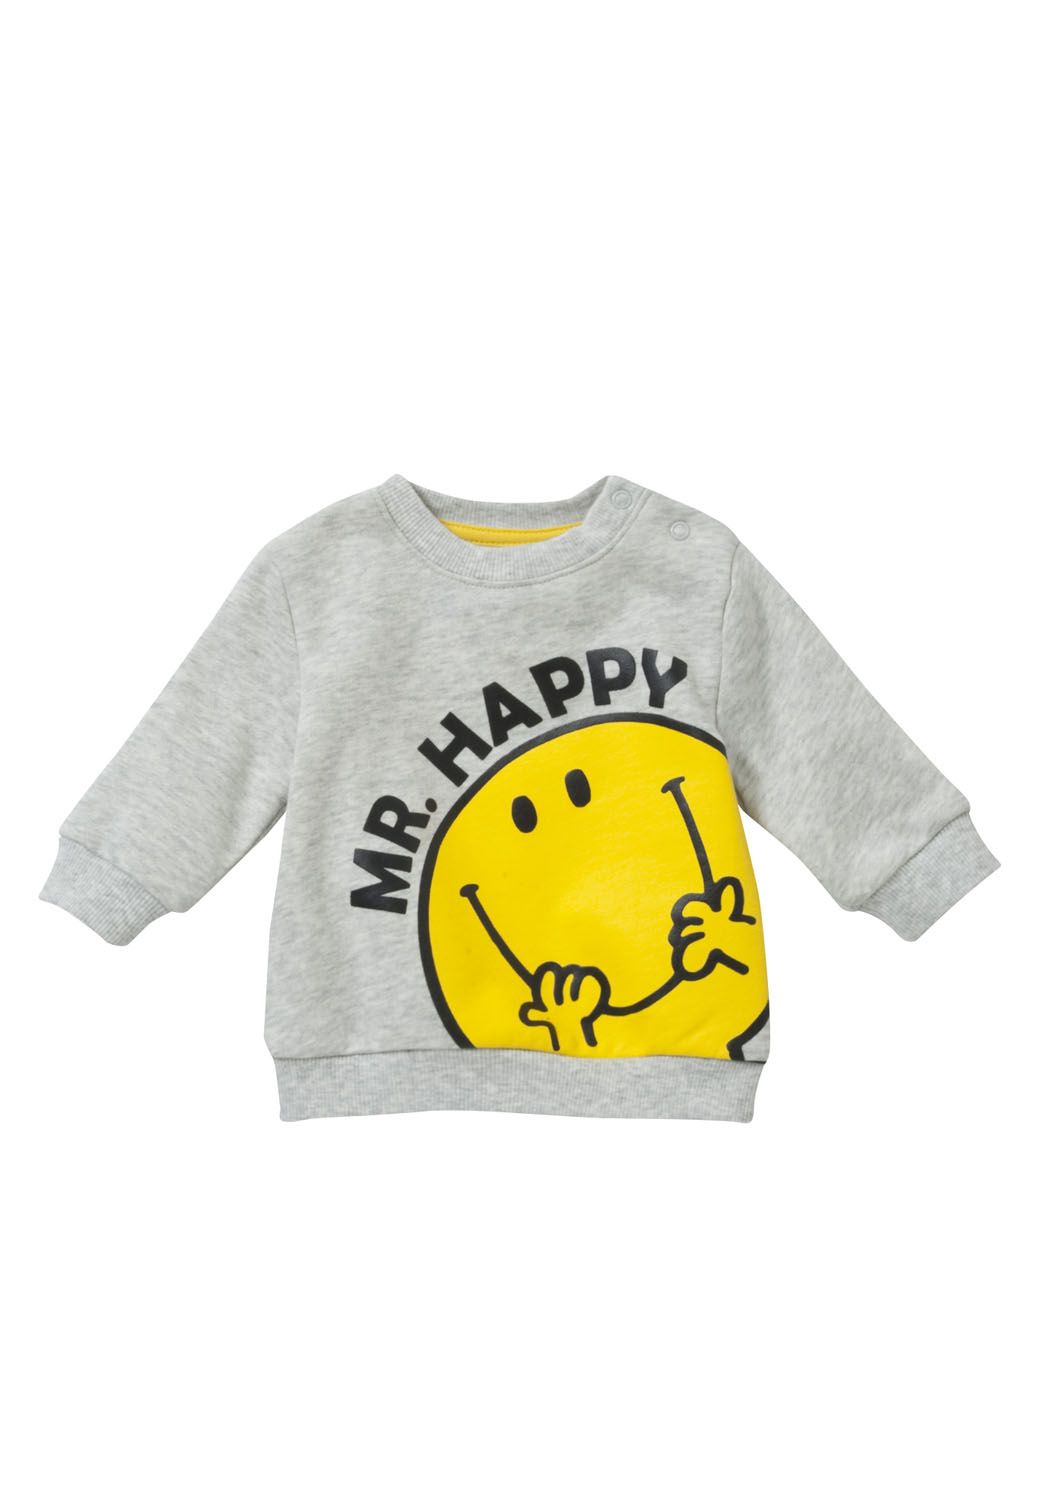 Mr. Men Mr. Happy Sweat Top